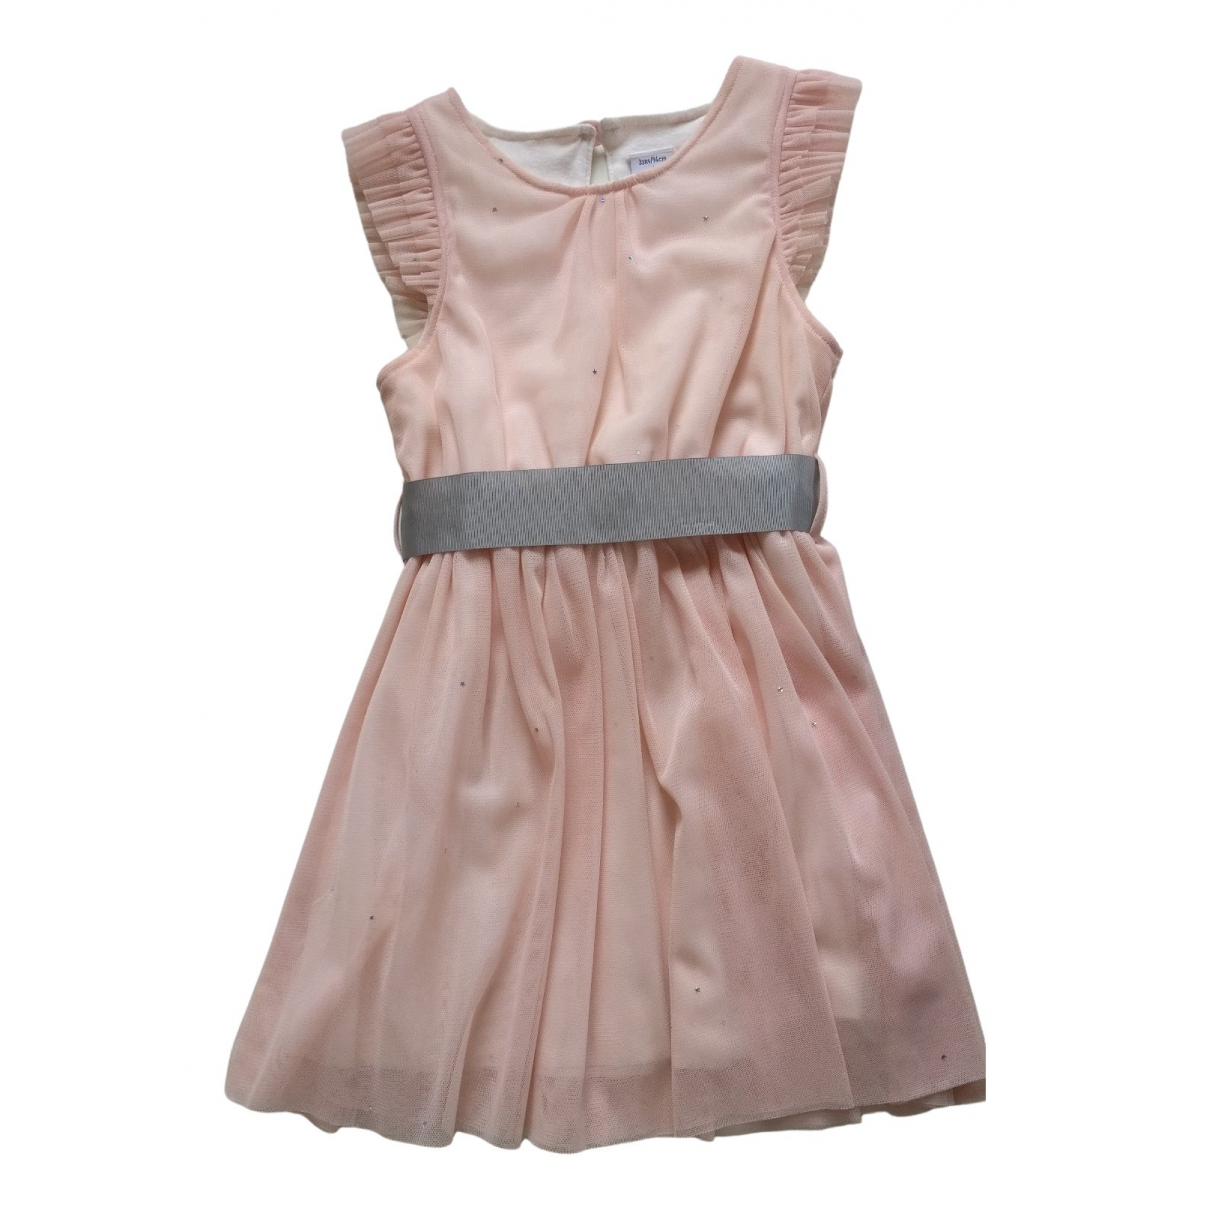 Petit Bateau N Pink dress for Kids 3 years - up to 98cm FR